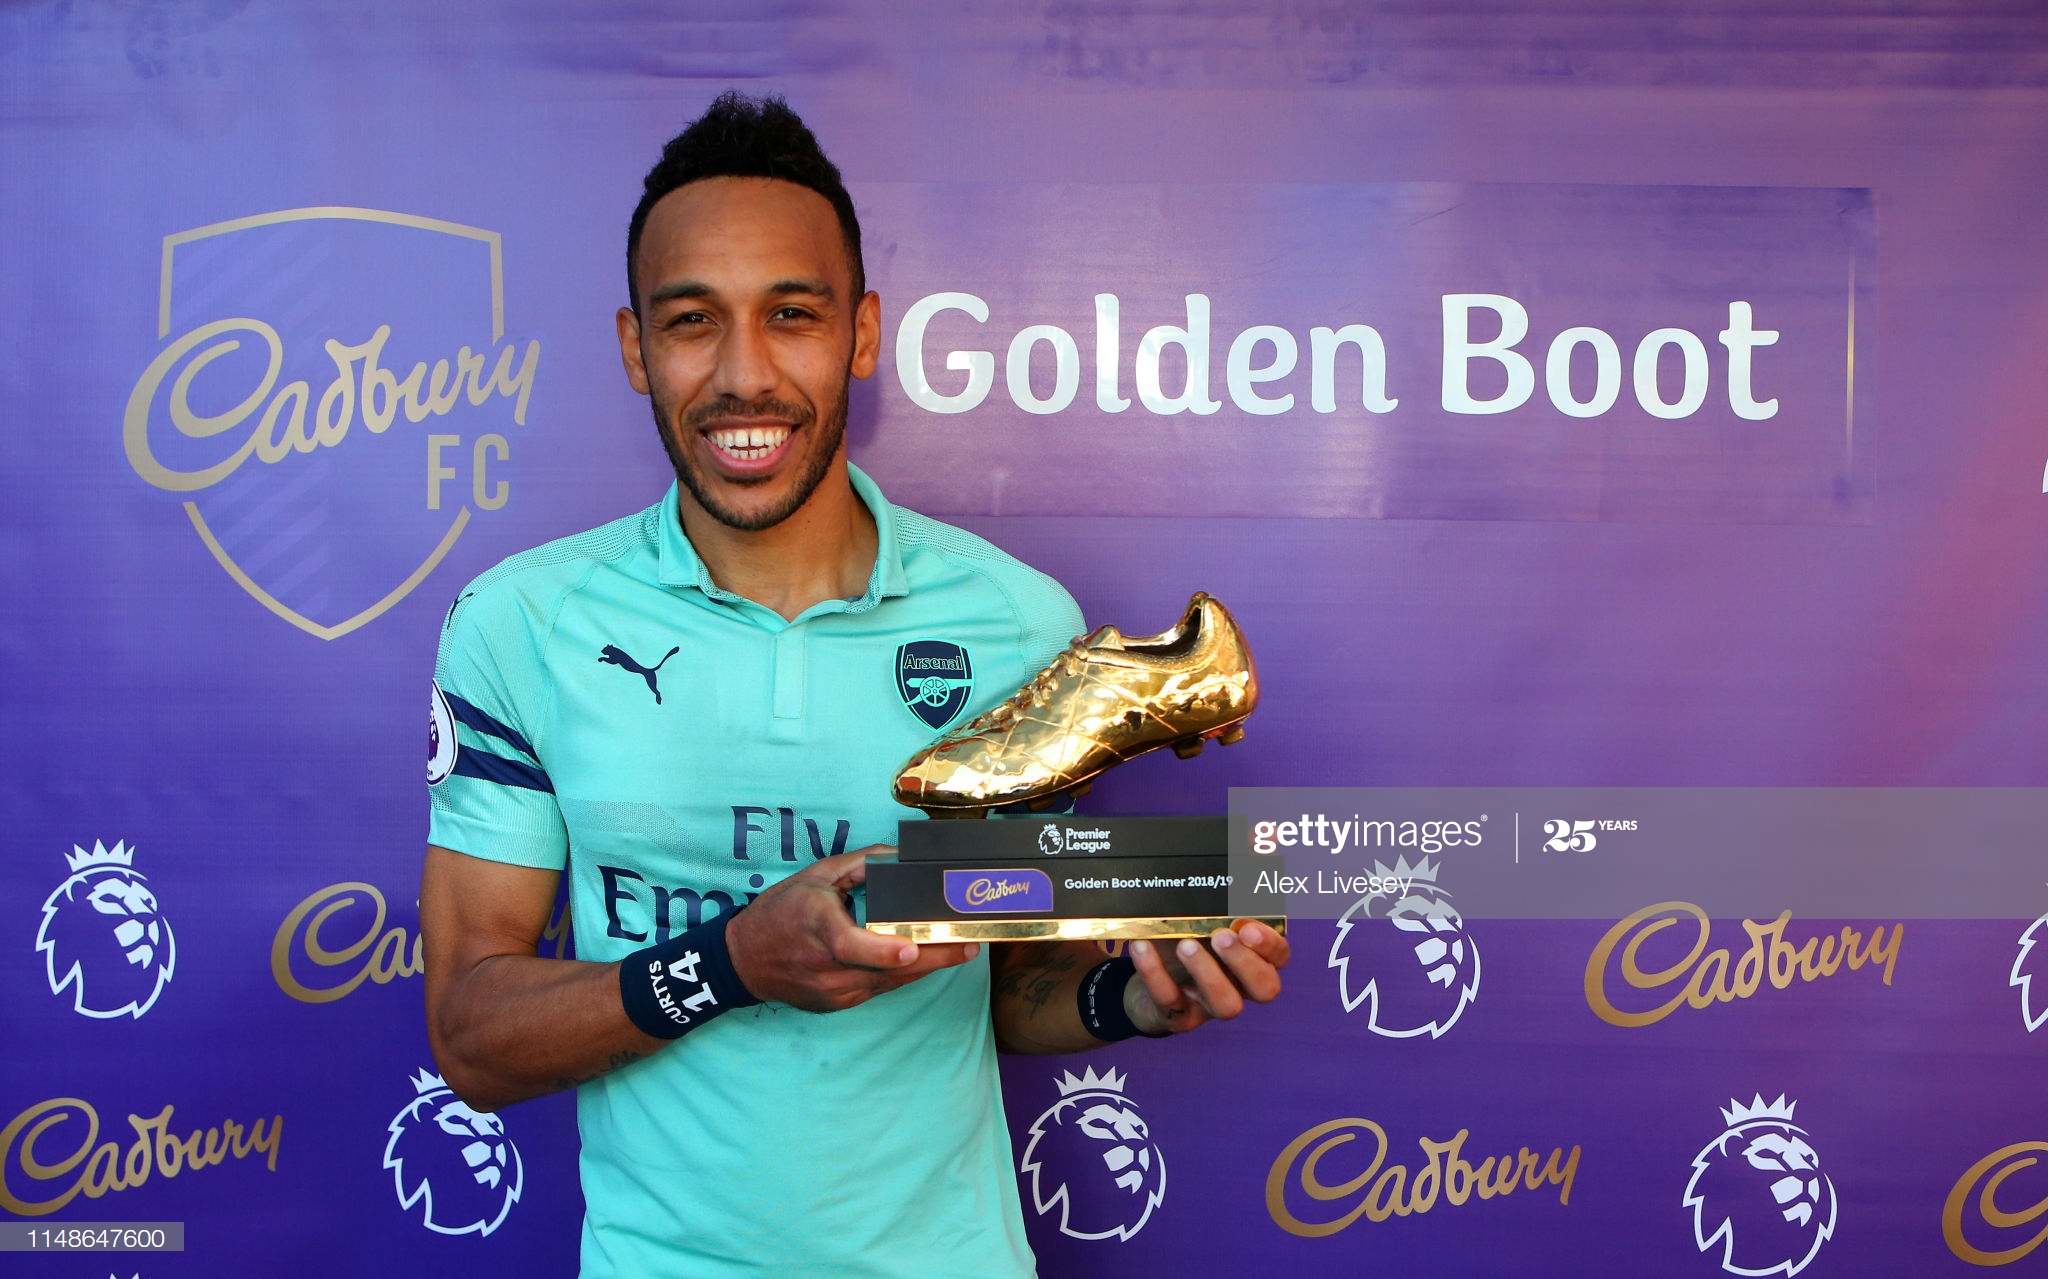 BURNLEY, ENGLAND - MAY 12: Pierre-Emerick Aubameyang of Arsenal poses with the golden boot trophy after the Premier League match between Burnley FC and Arsenal FC at Turf Moor on May 12, 2019 in Burnley, United Kingdom. (Photo by Alex Livesey/Getty Images)